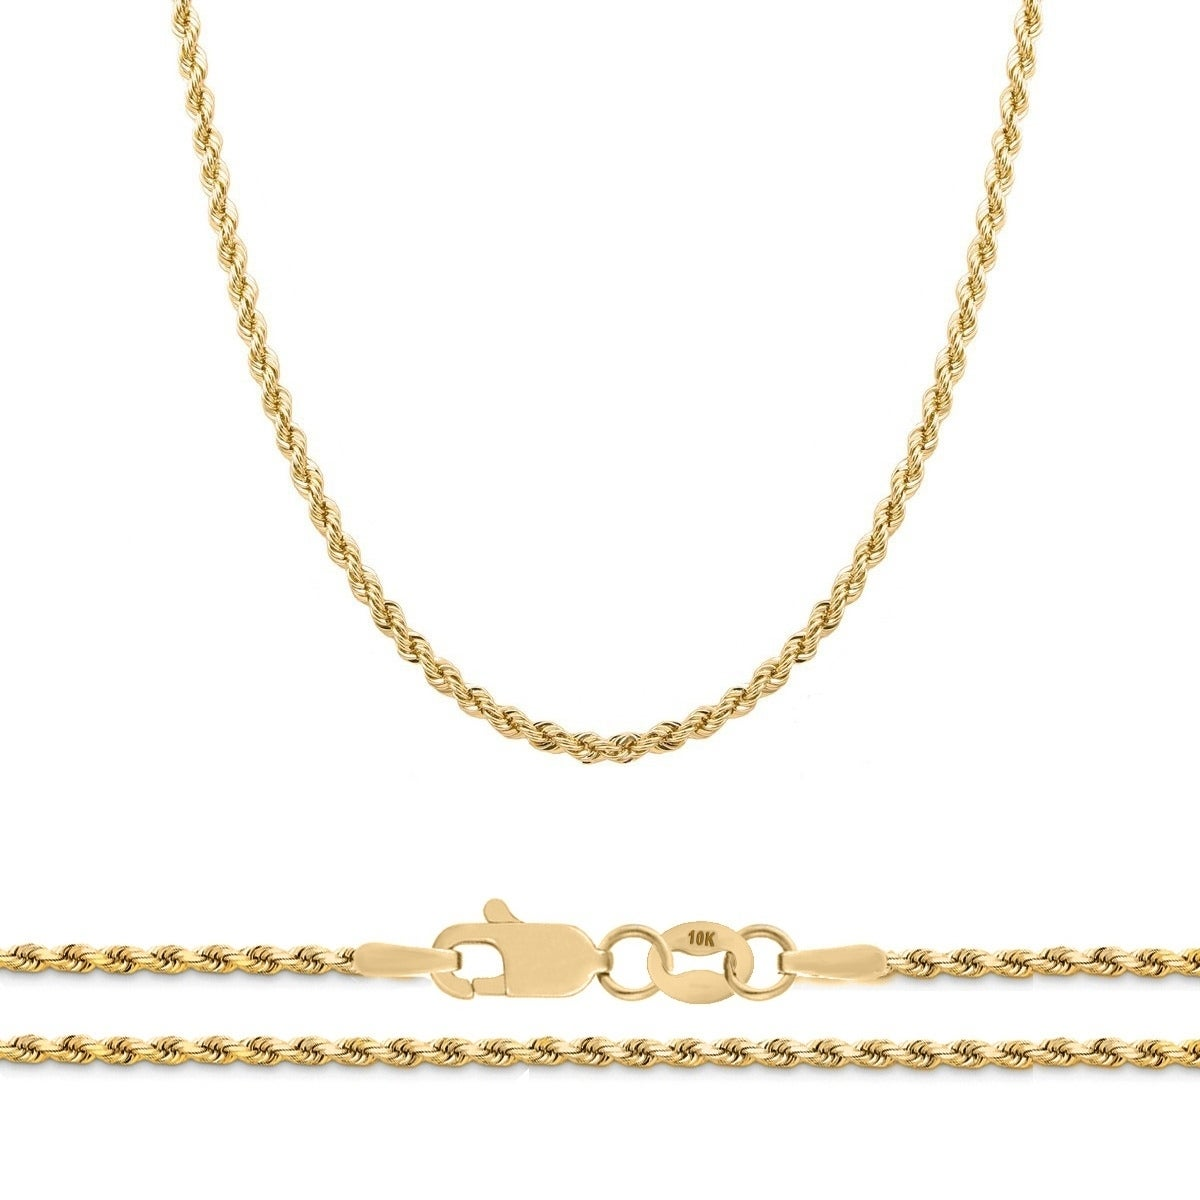 de52ef619c707 10K Yellow Gold 2.25mm Diamond Cut Rope Chain Necklace, 16